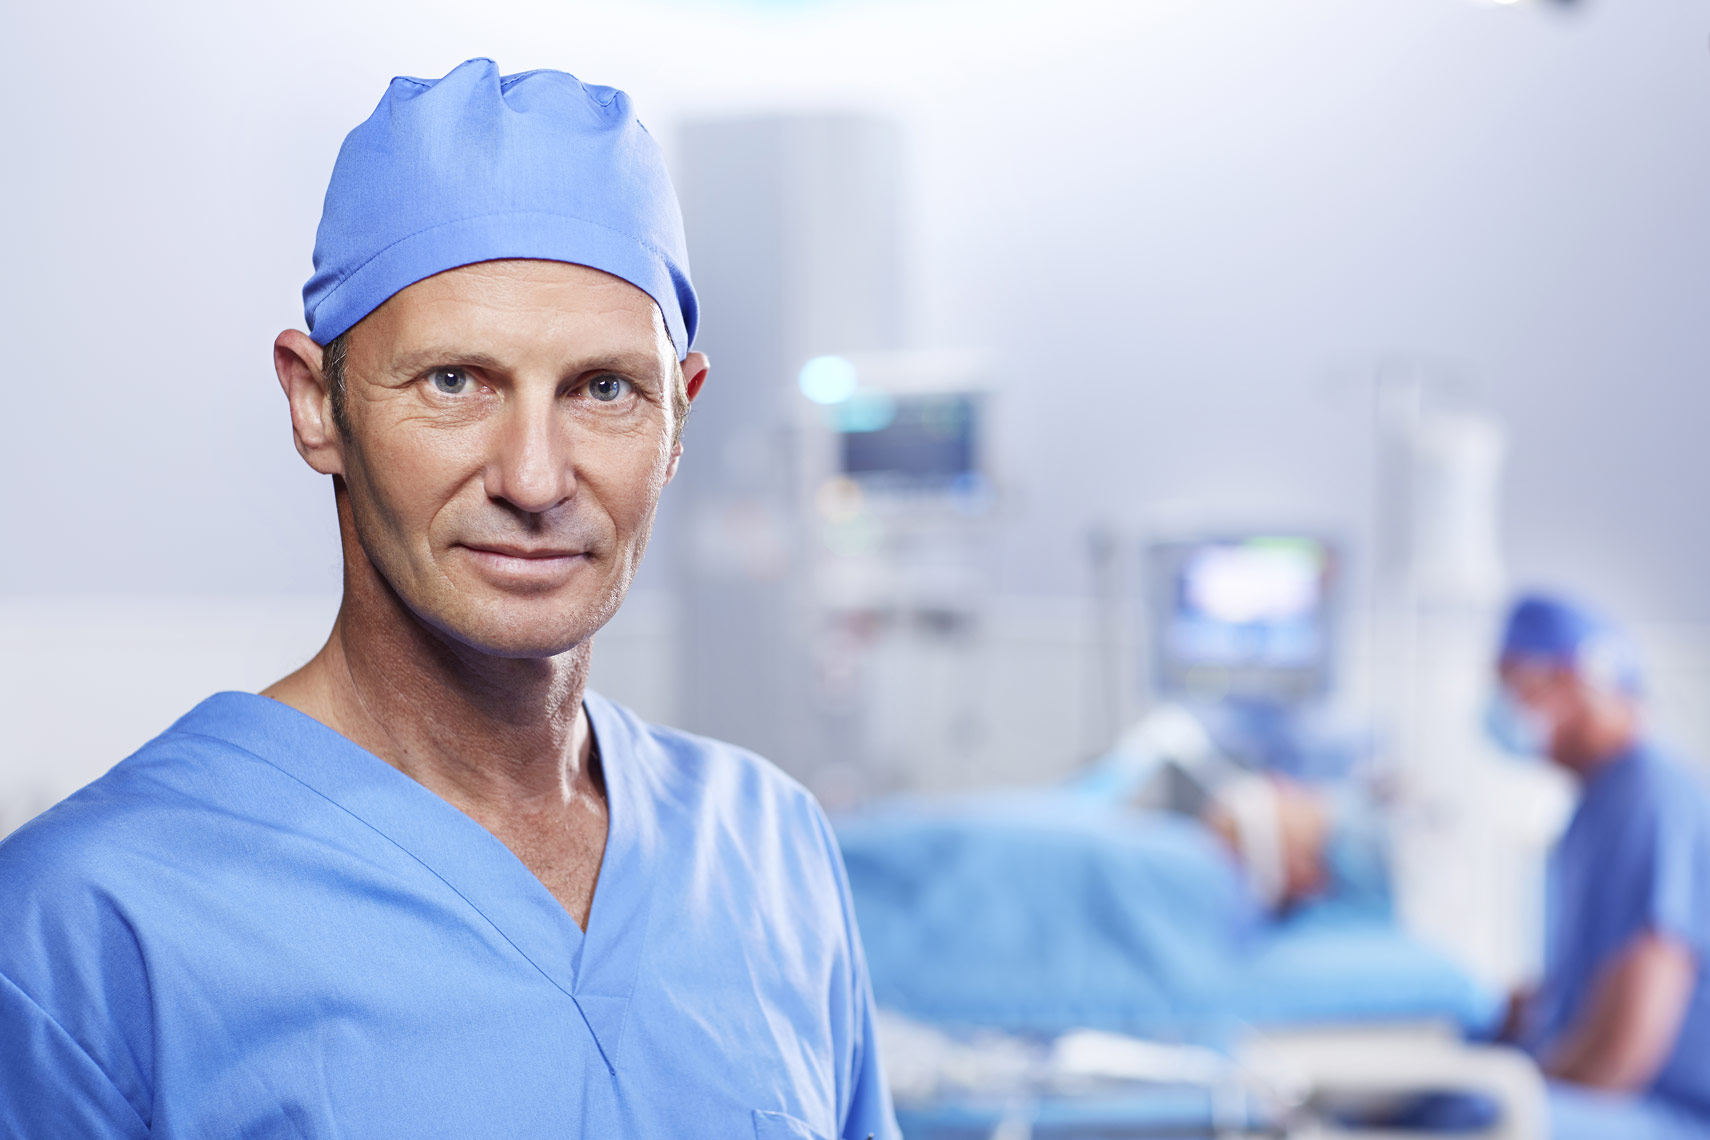 cardiac surgeon portrait